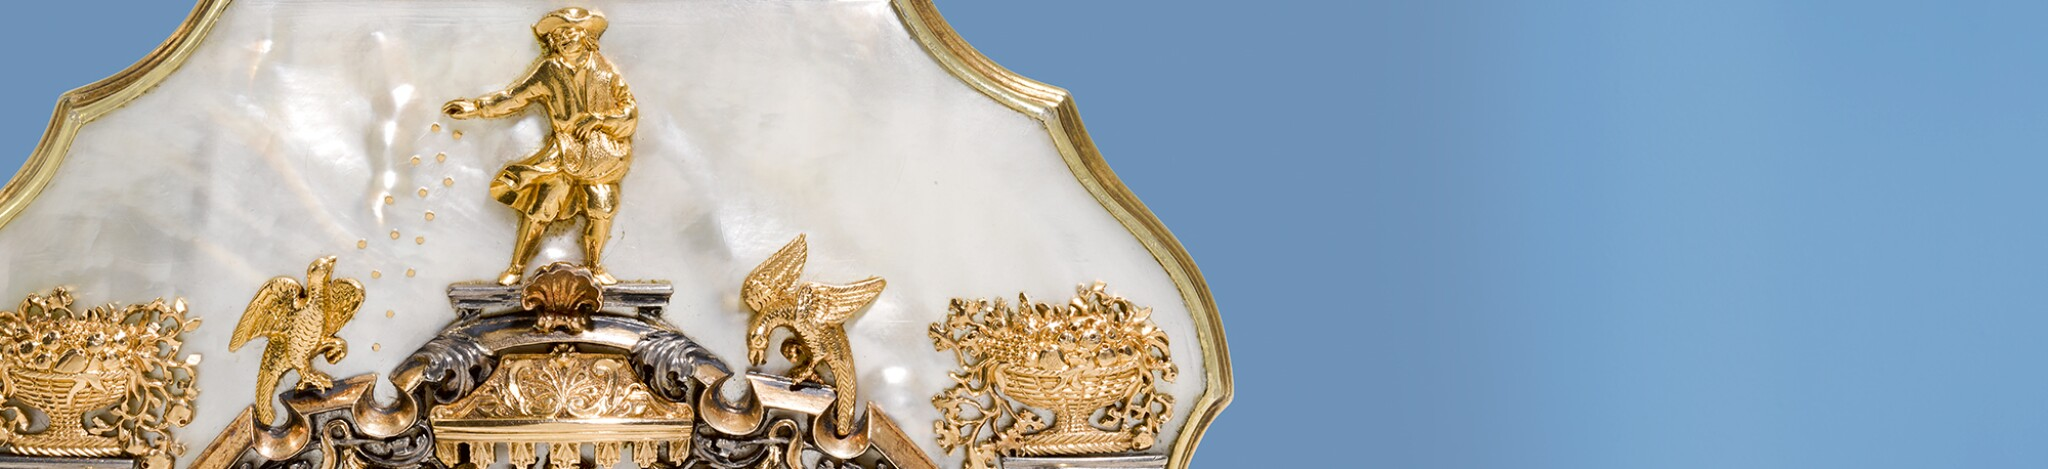 STYLE:  European Silver, Gold Boxes and Ceramics